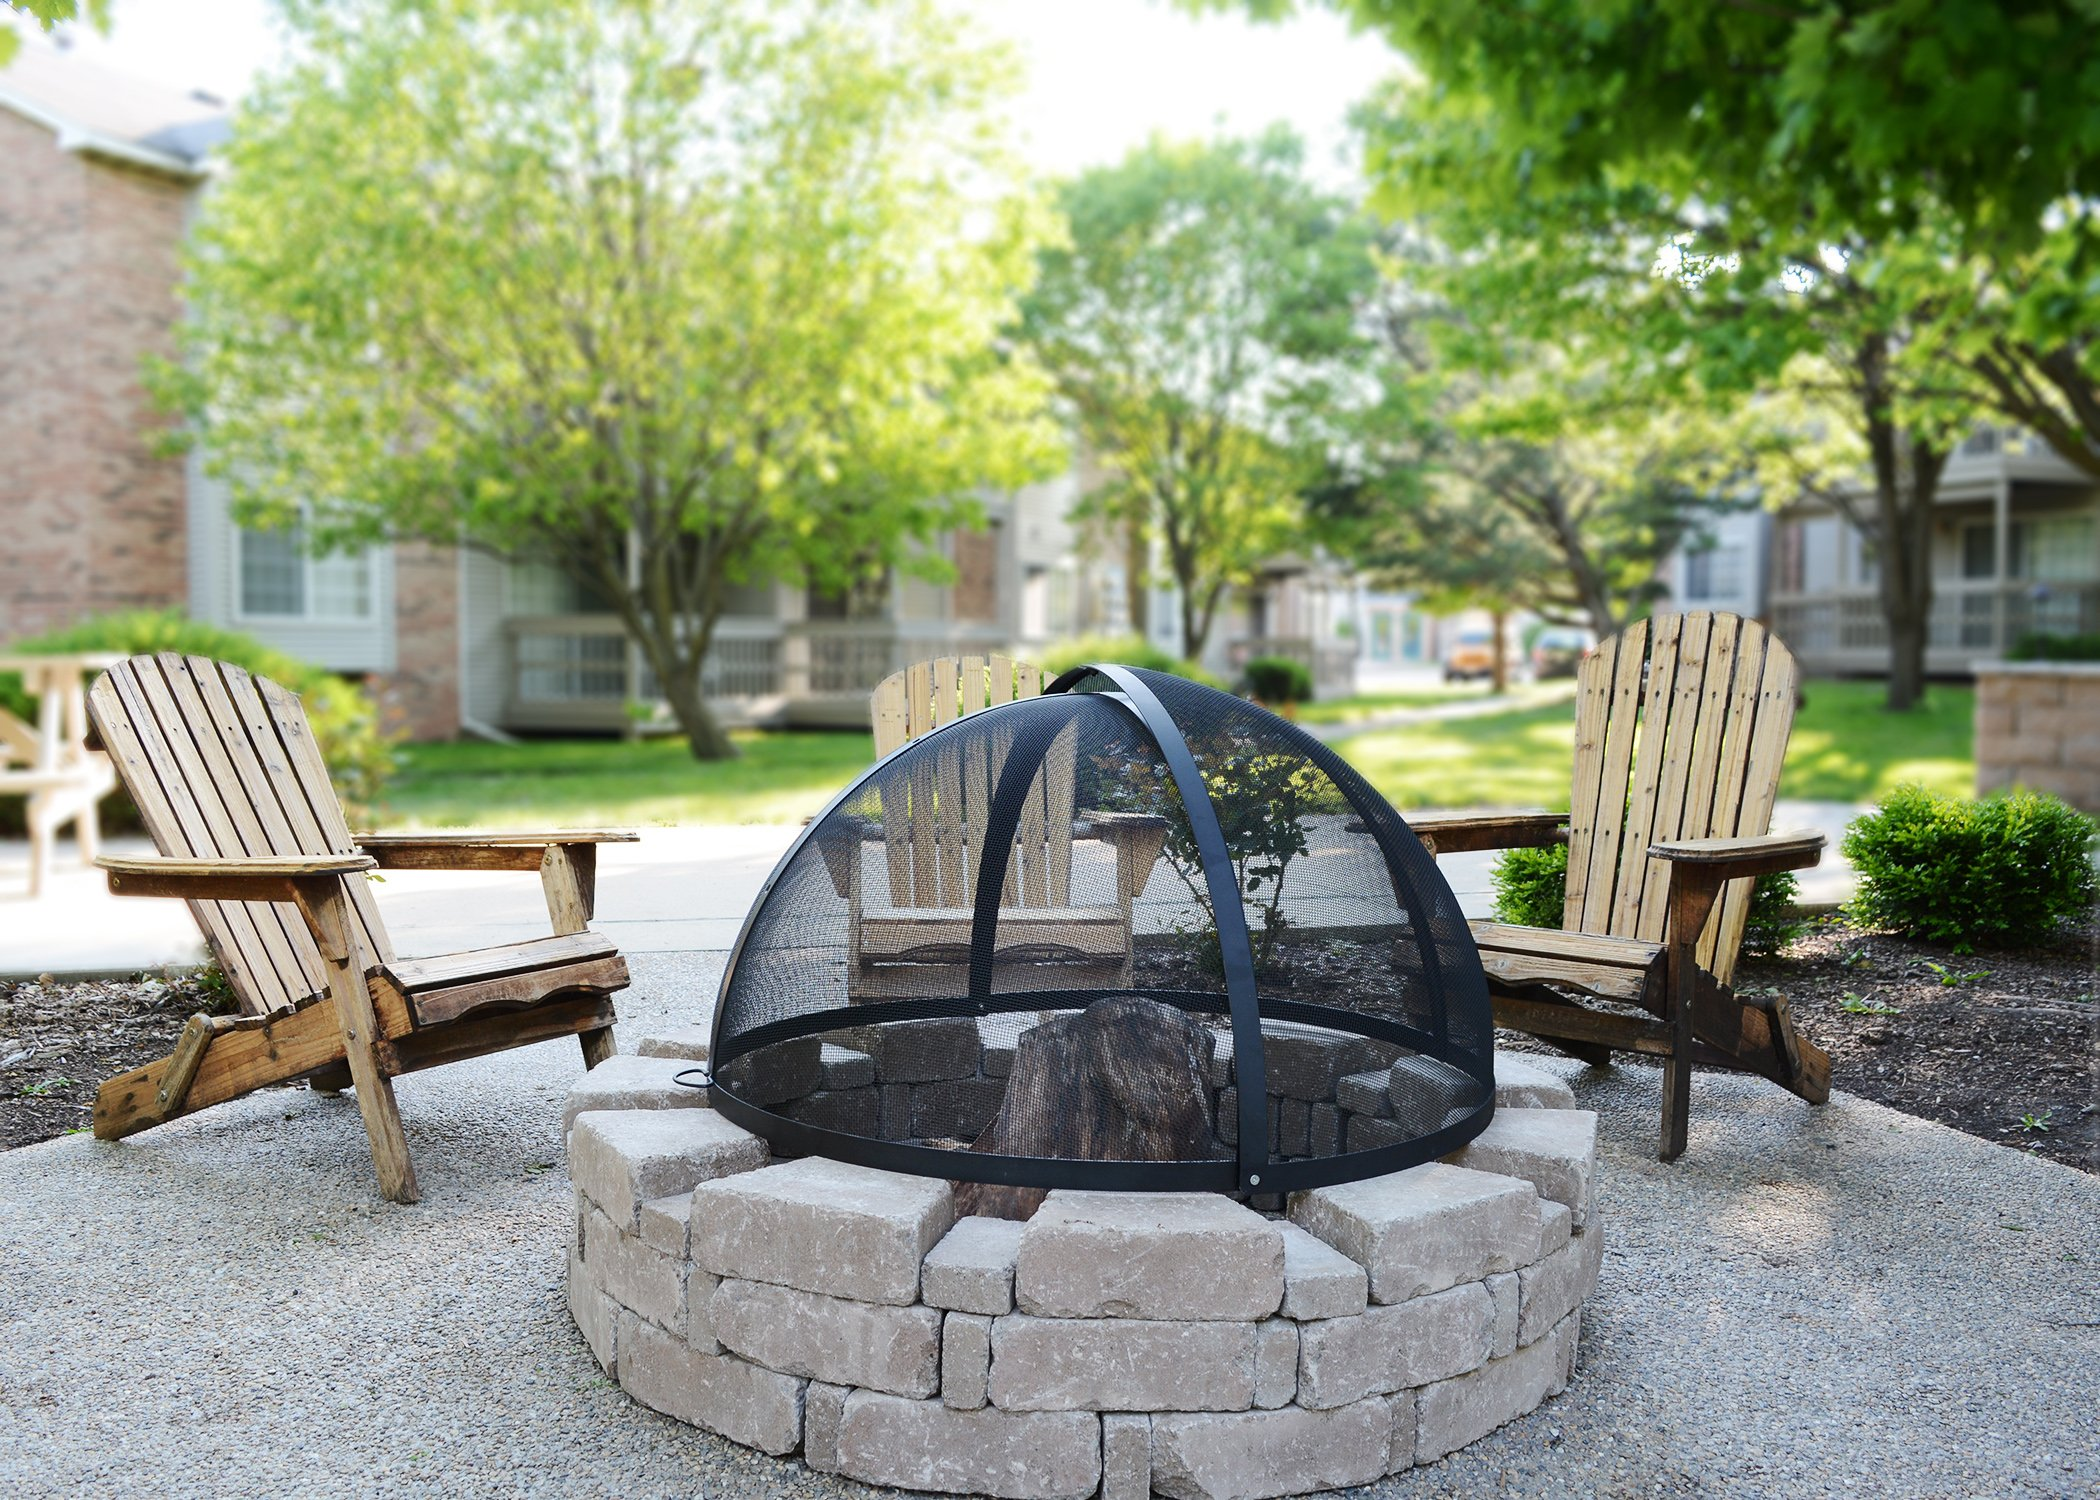 32-Inch Fire Pit Easy Access Spark Screen by Hampton's Buzaar (Image #7)